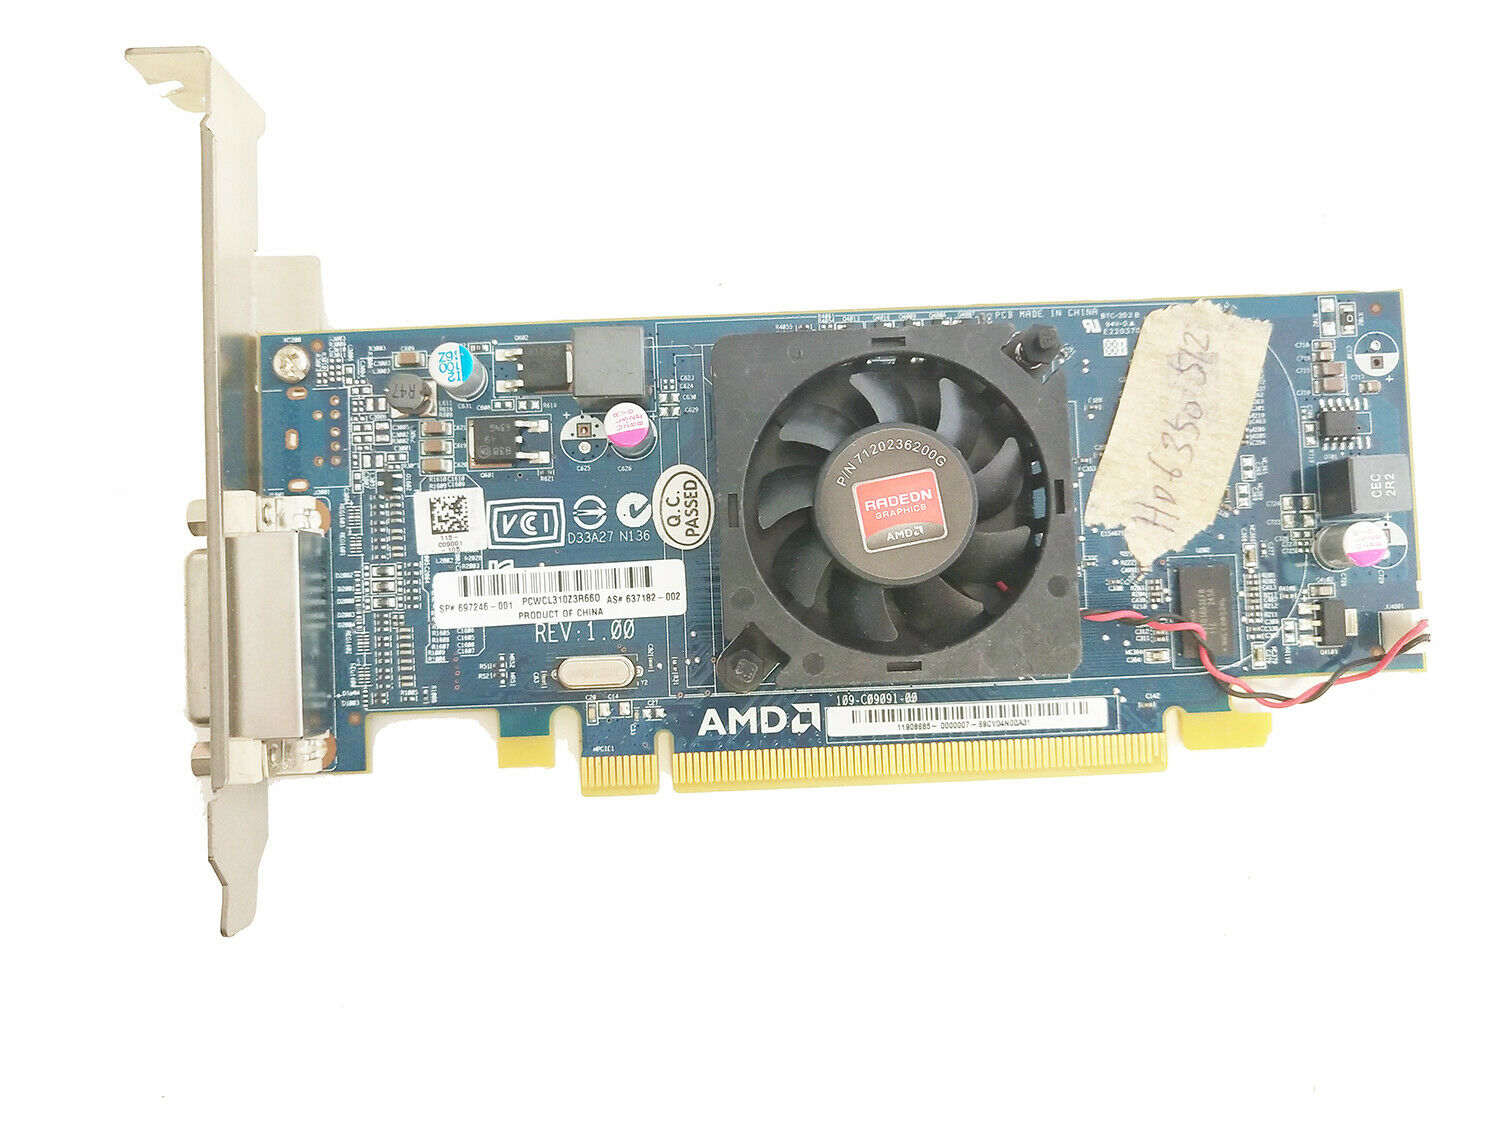 FOR HP AMD Radeon 6350 512MB PCI-E x16 DMS-59 Low Profile Video Card 697246-001